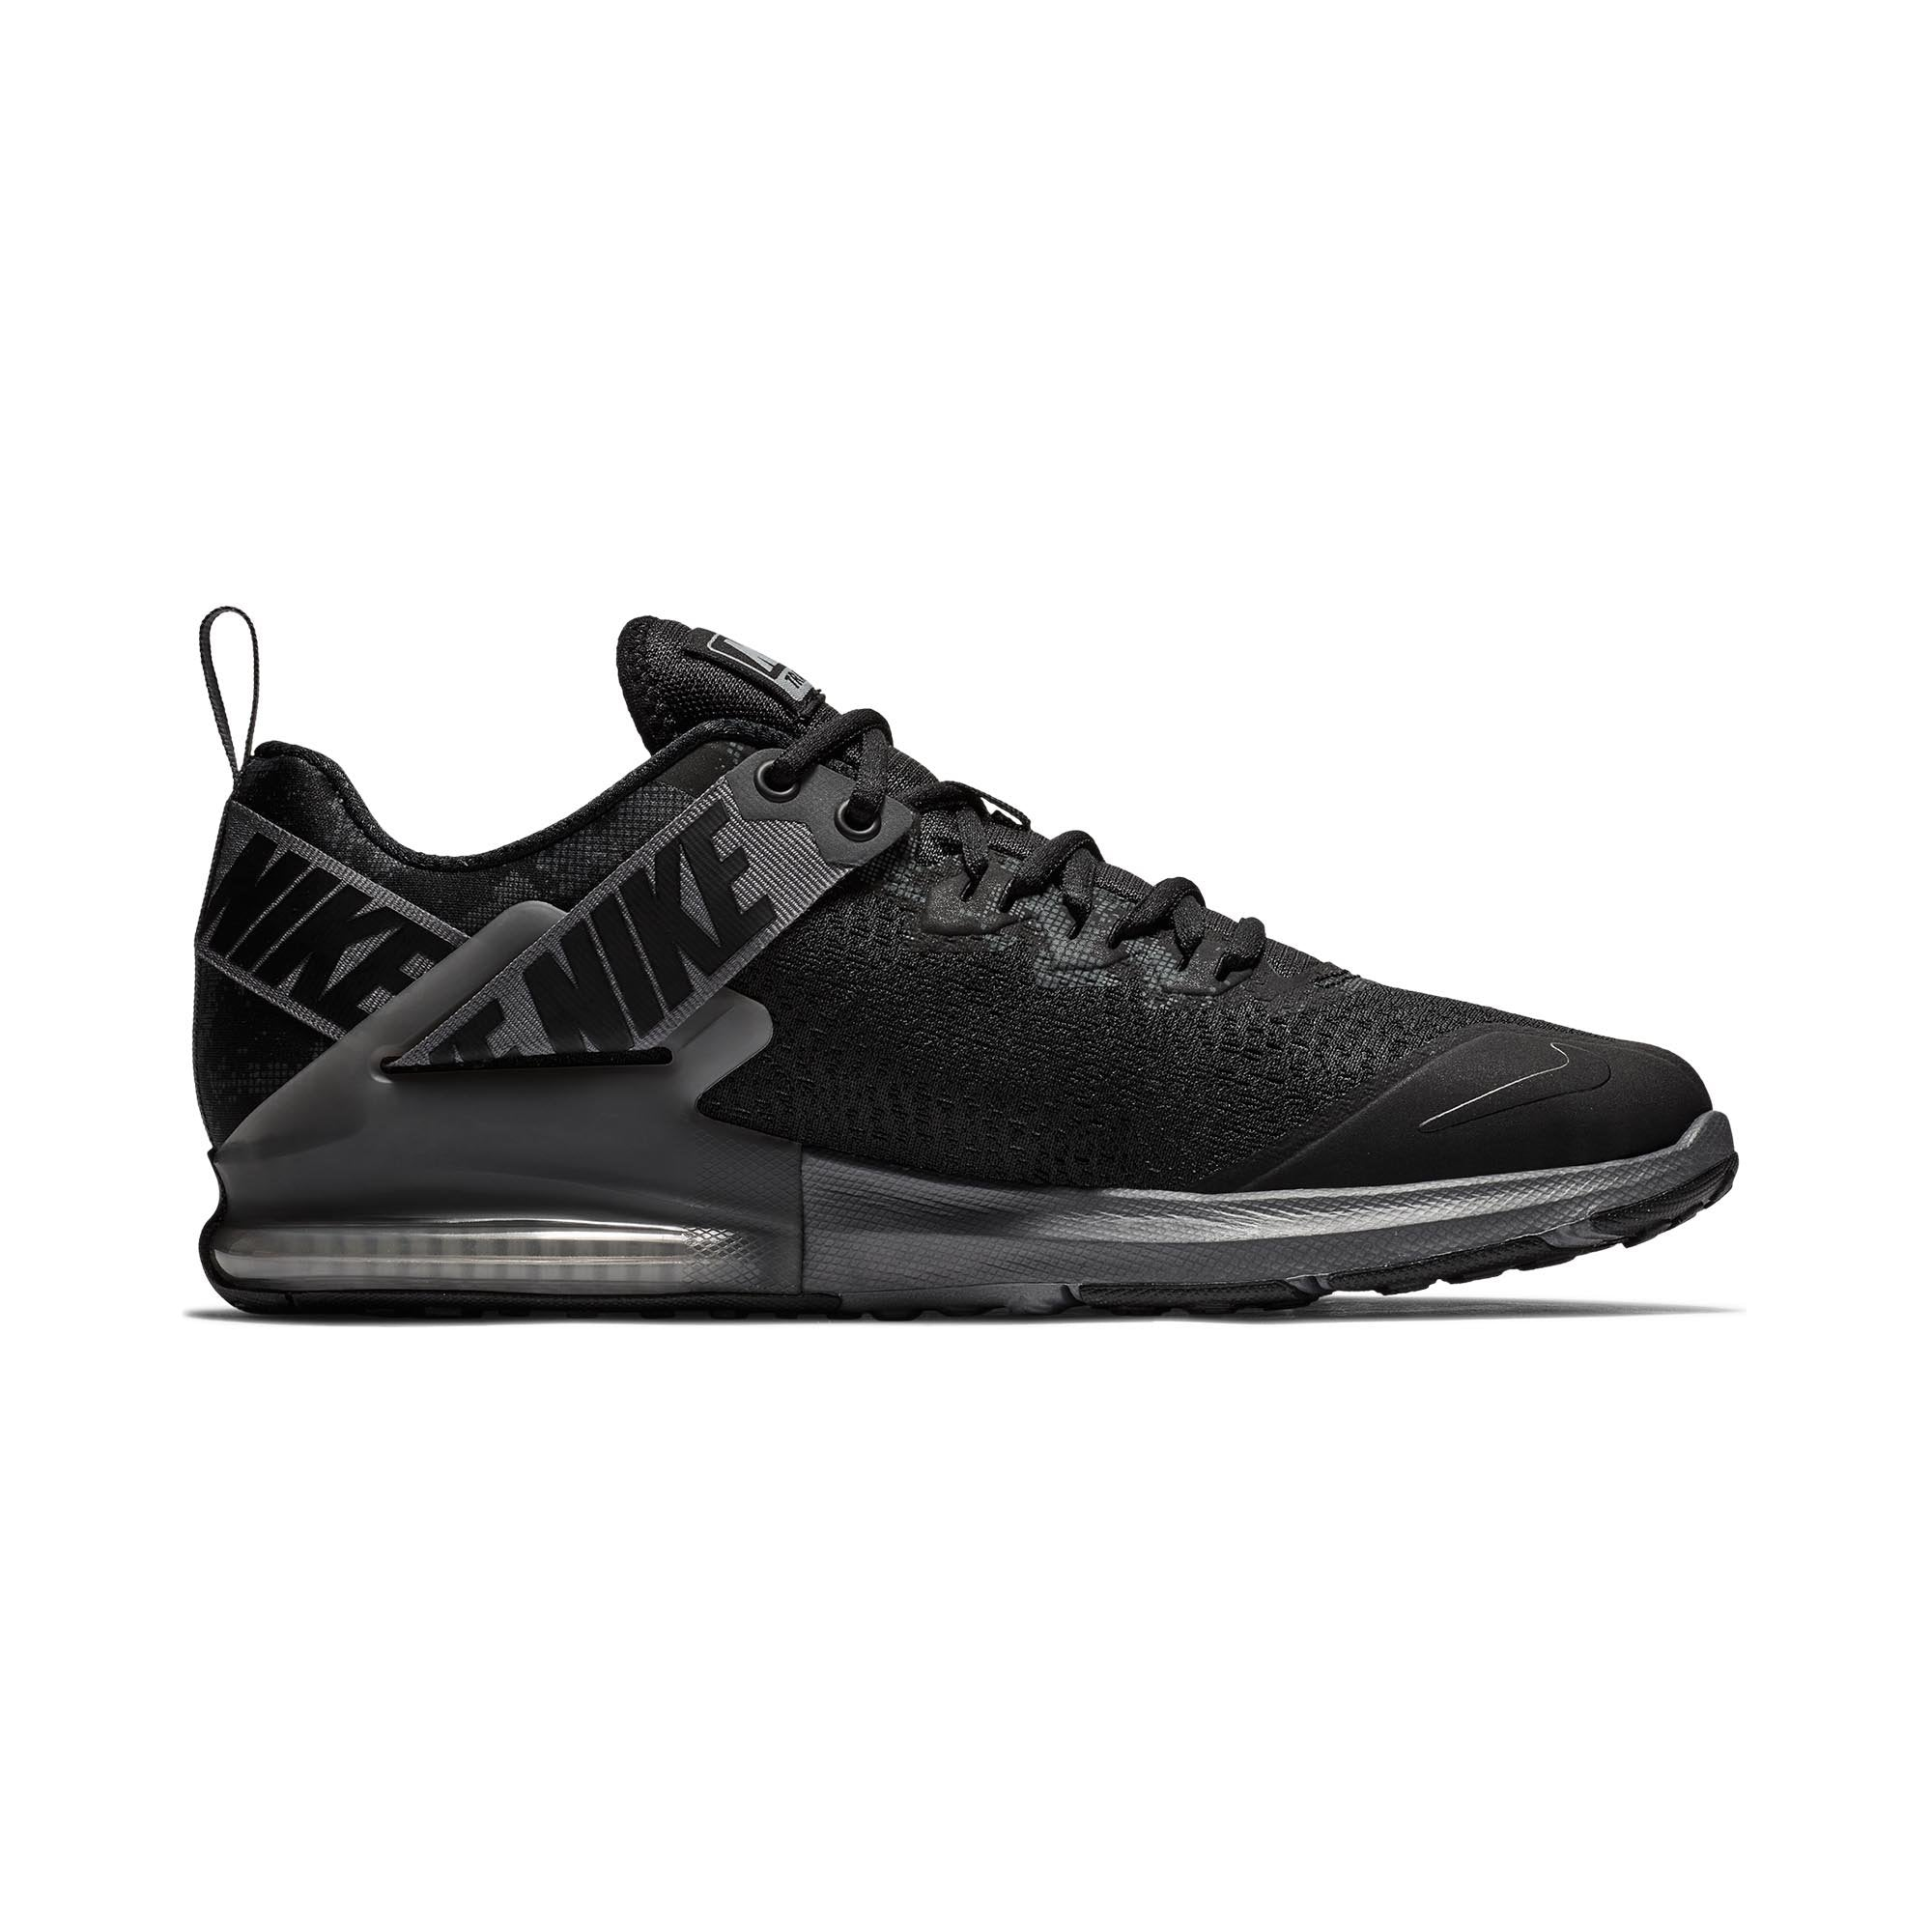 32eb670d218 Buy Nike Men Zoom Domination Tr 2 Training Shoes